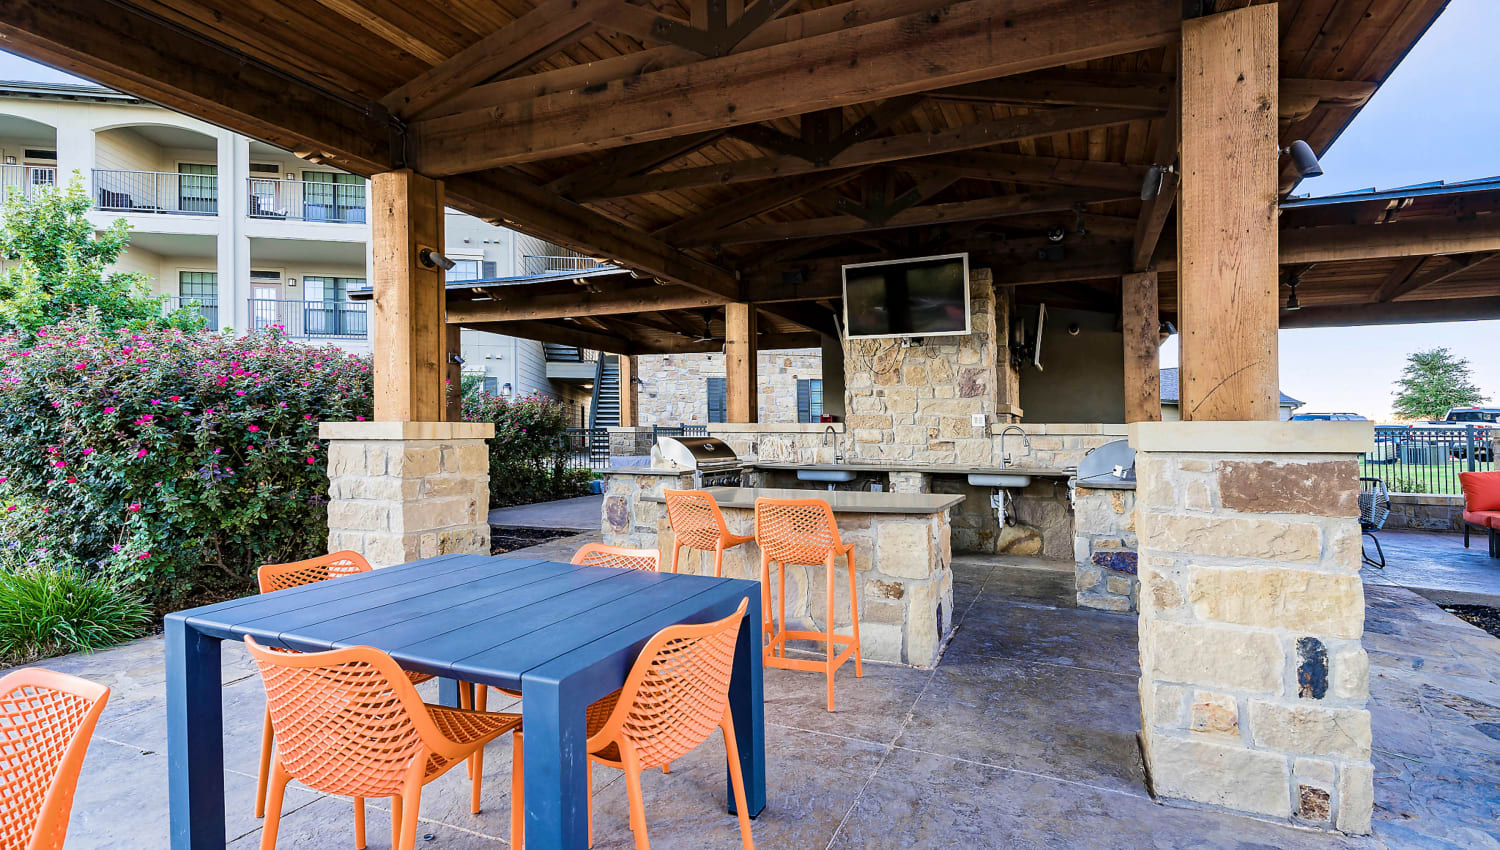 Covered barbecue area with ample seating at Sedona Ranch in Odessa, Texas